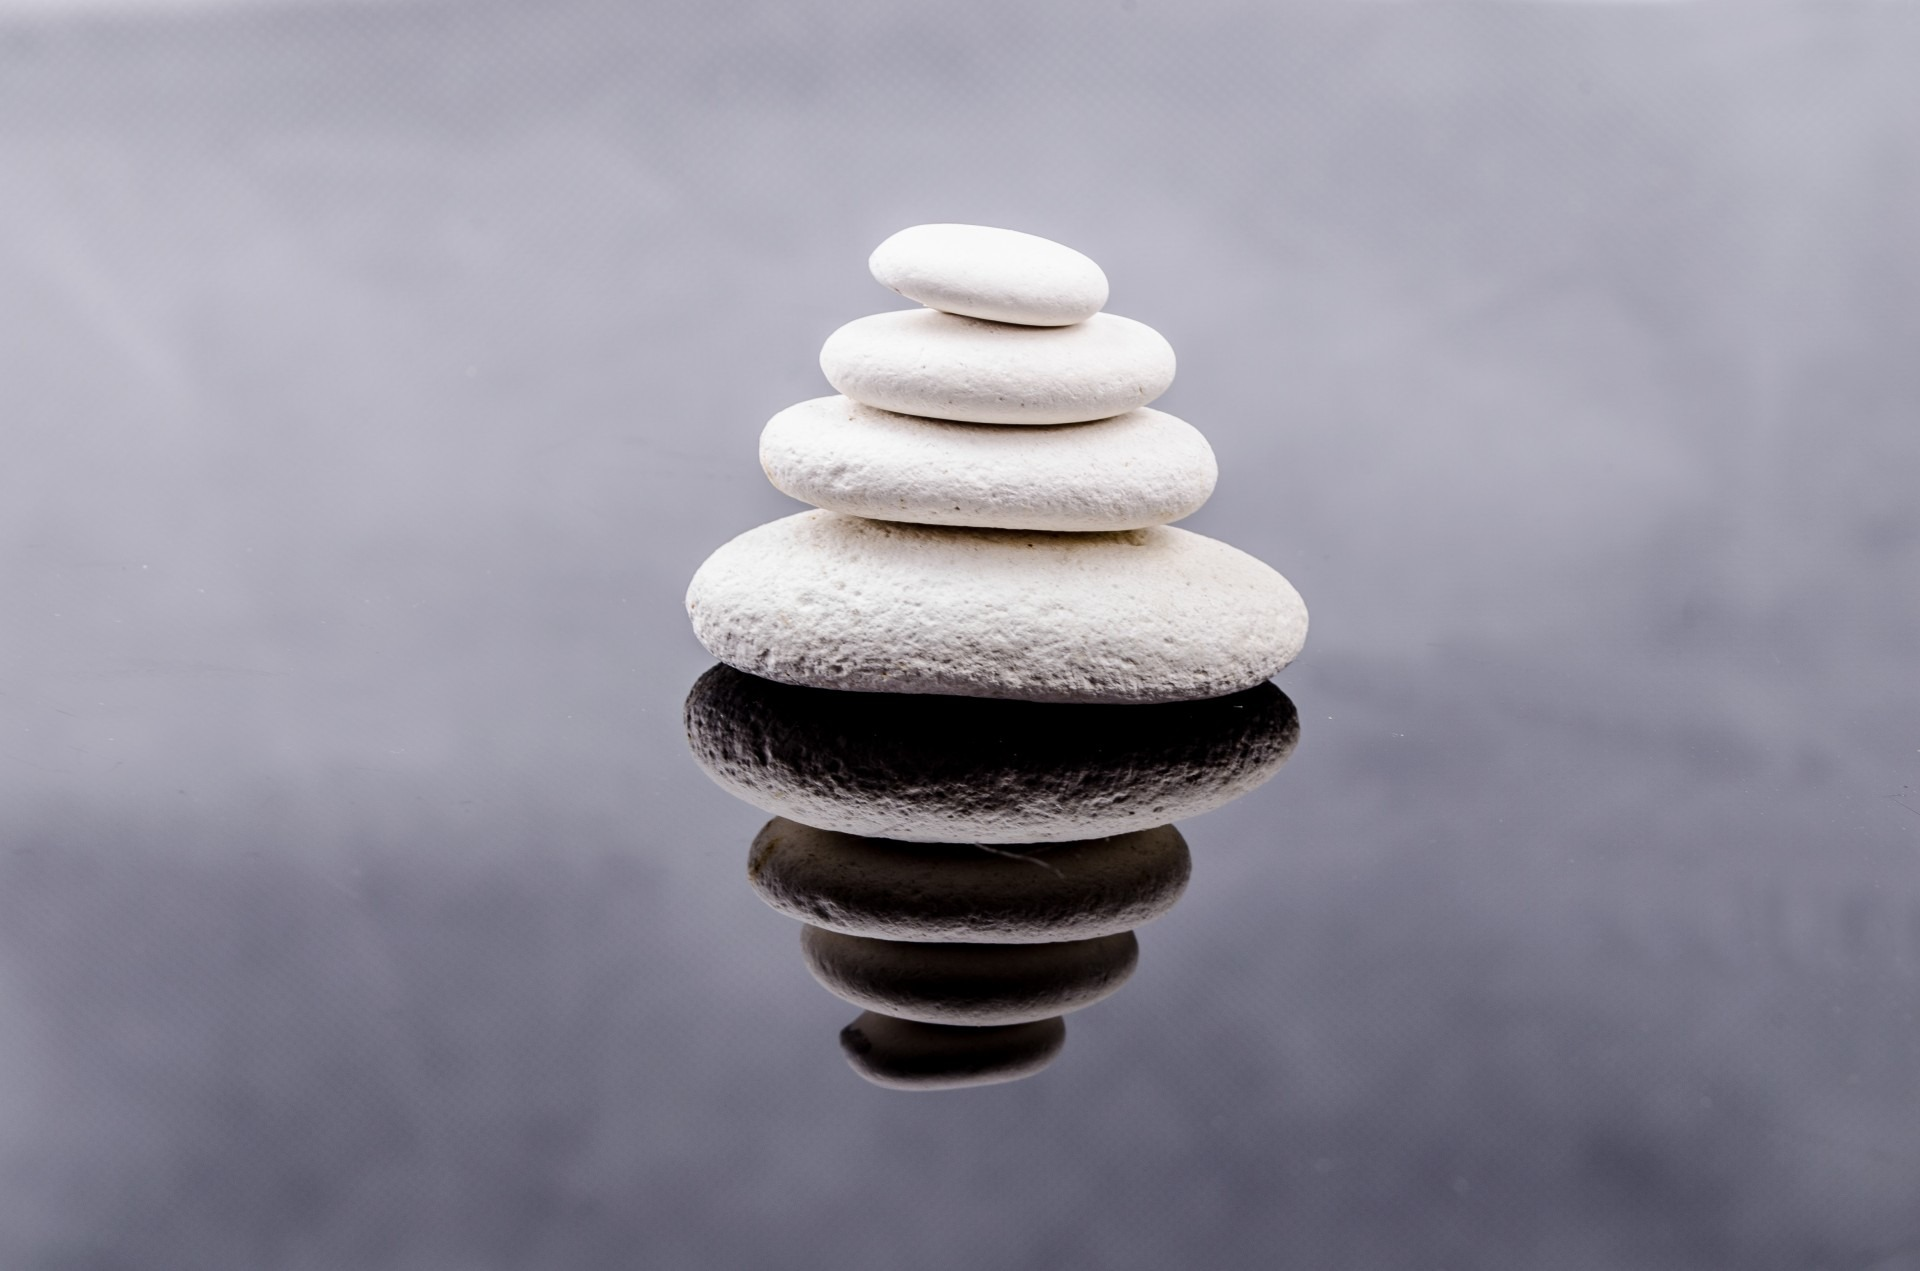 A balanced design of stacks of rocks with different colours and a contrasting background